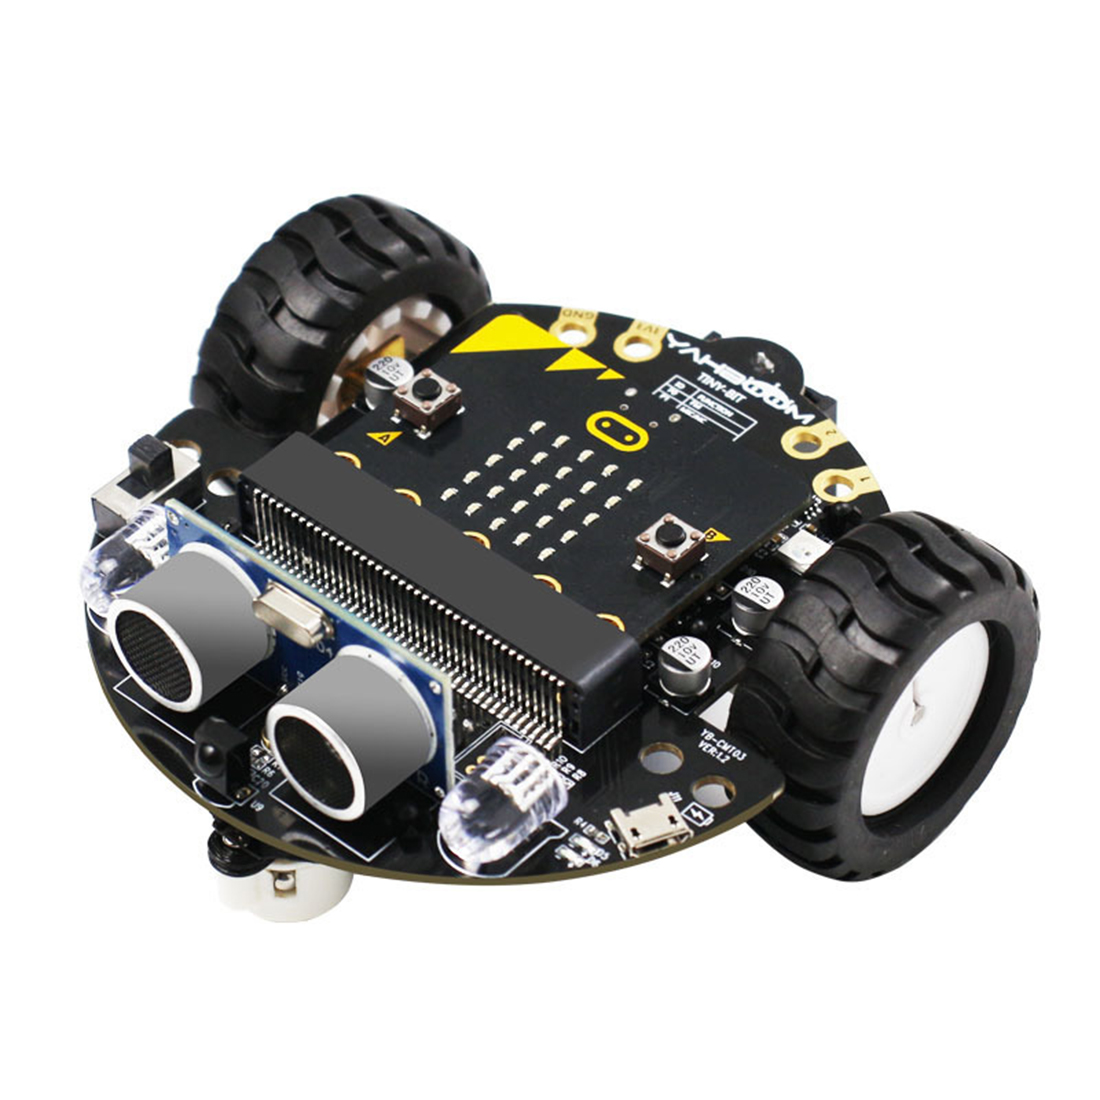 Hot DIY Obstacle Avoidance Smart Programmable Robot Car Educational Learning Kit With Mainboard/Without Mainboard For Micro:Bit